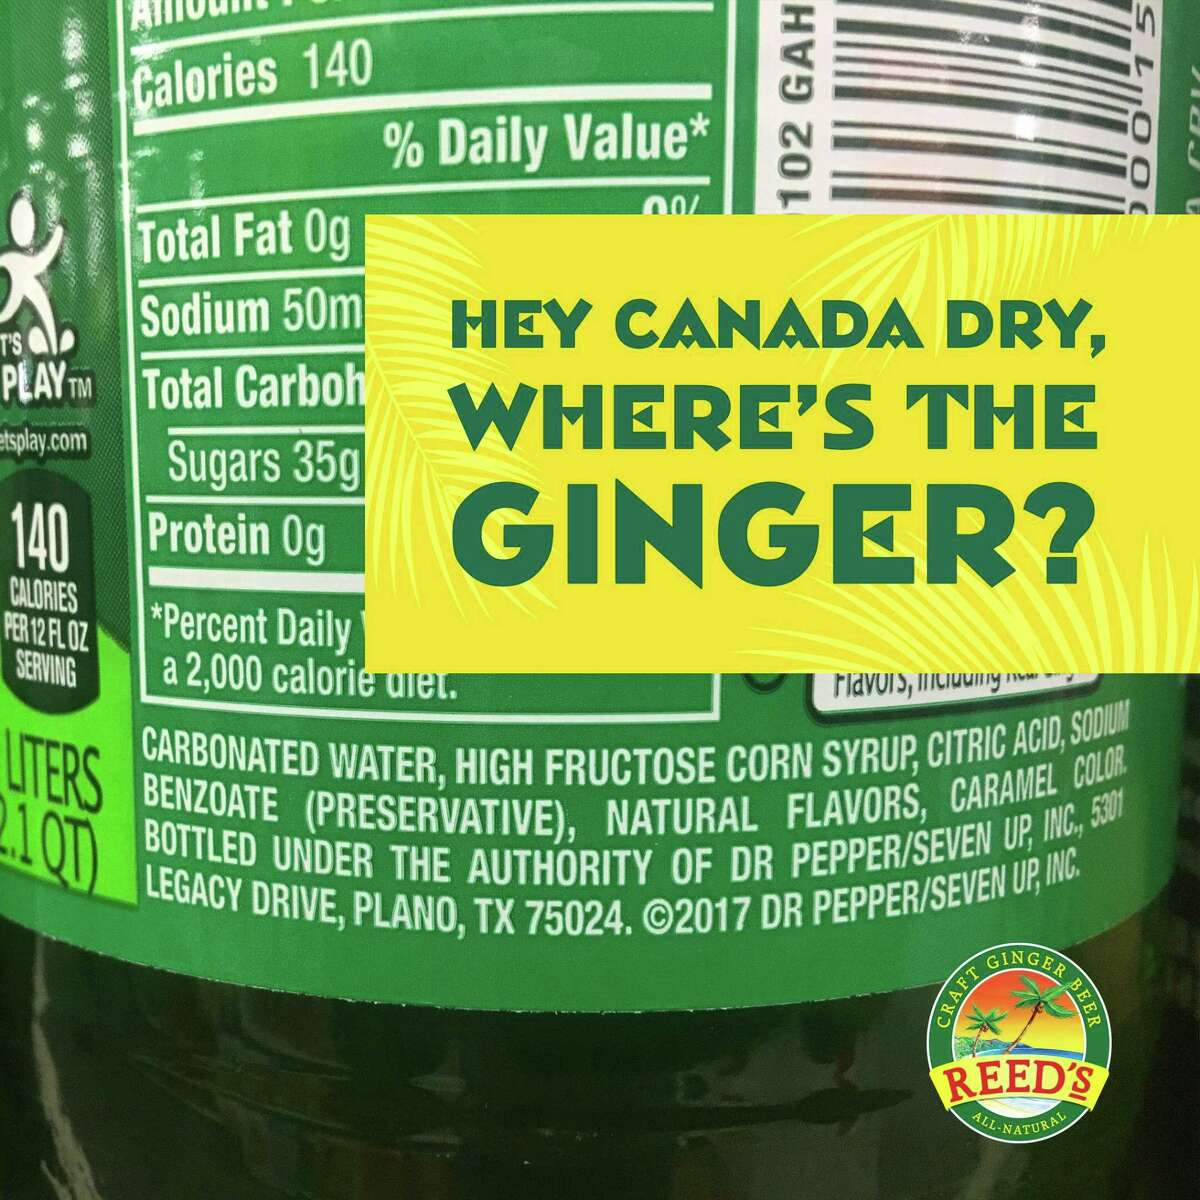 A promotional image issued by Reed's as part of a campaign to contrast the Norwalk company's ginger beer with that sold by the Canada Dry division of Dr Pepper/Seven Up. (Press image via Reed's)